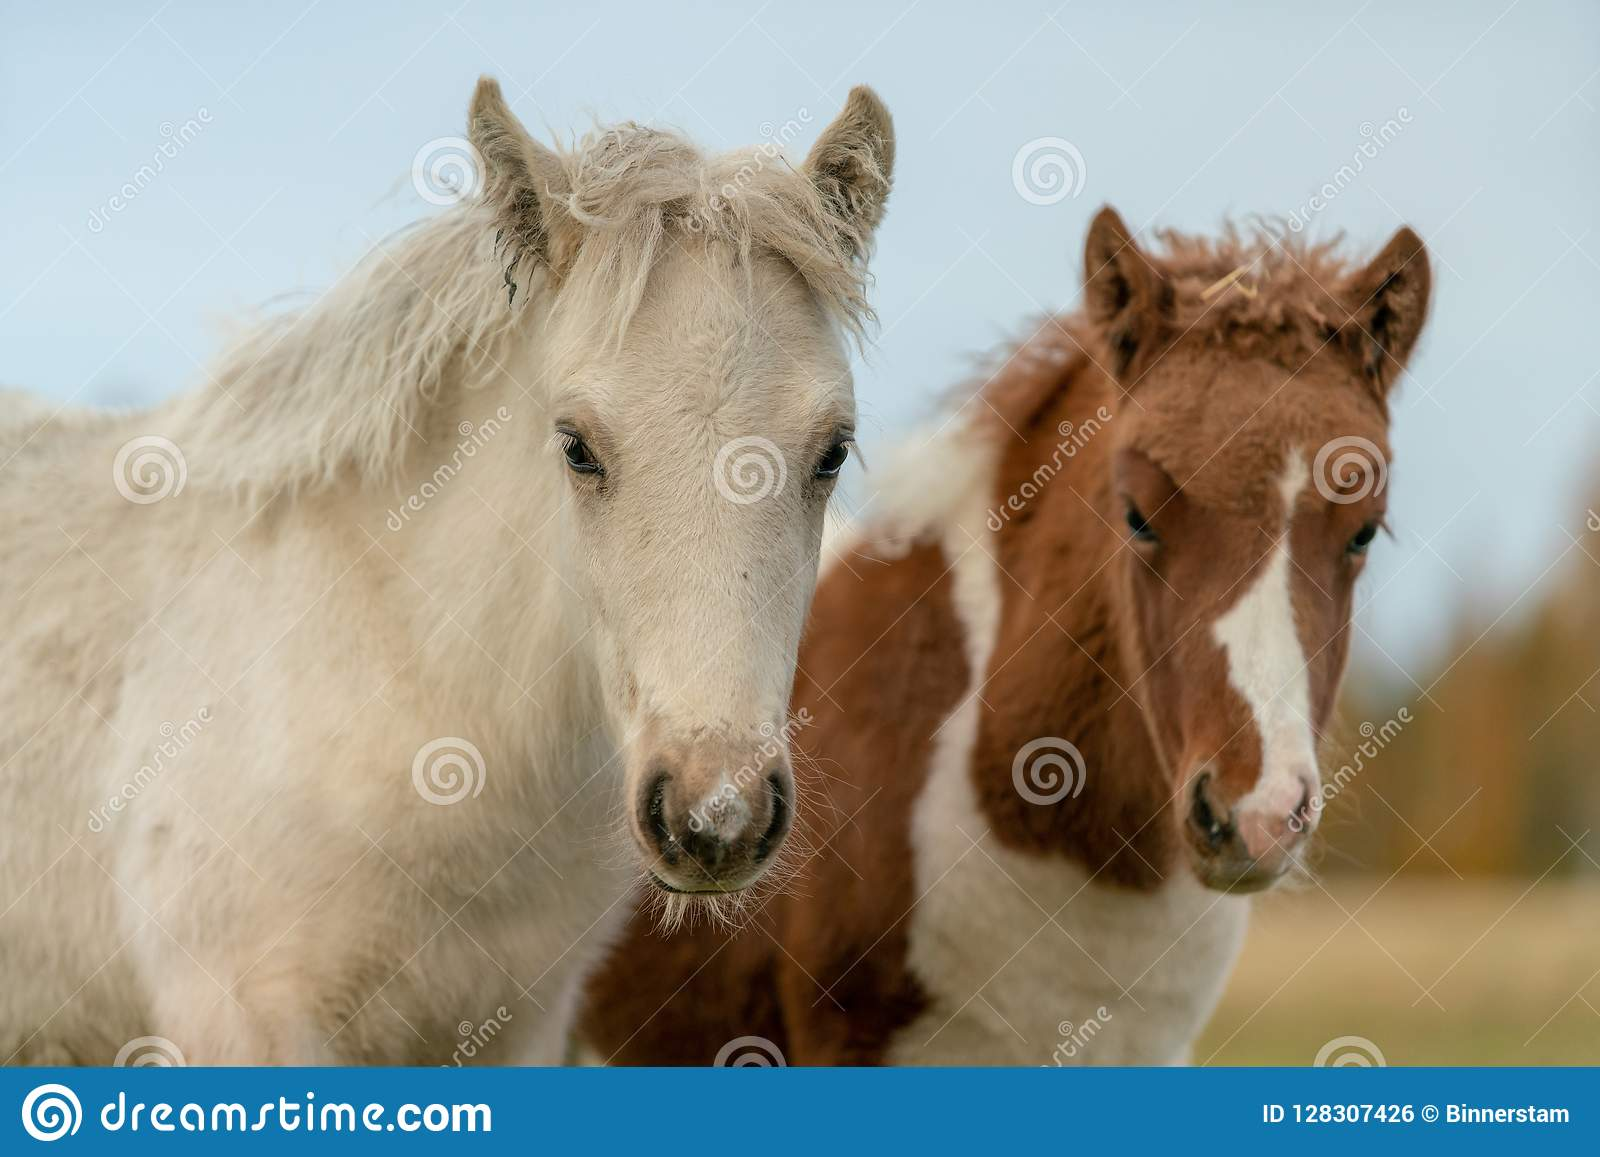 Two young Icelandic horse foal